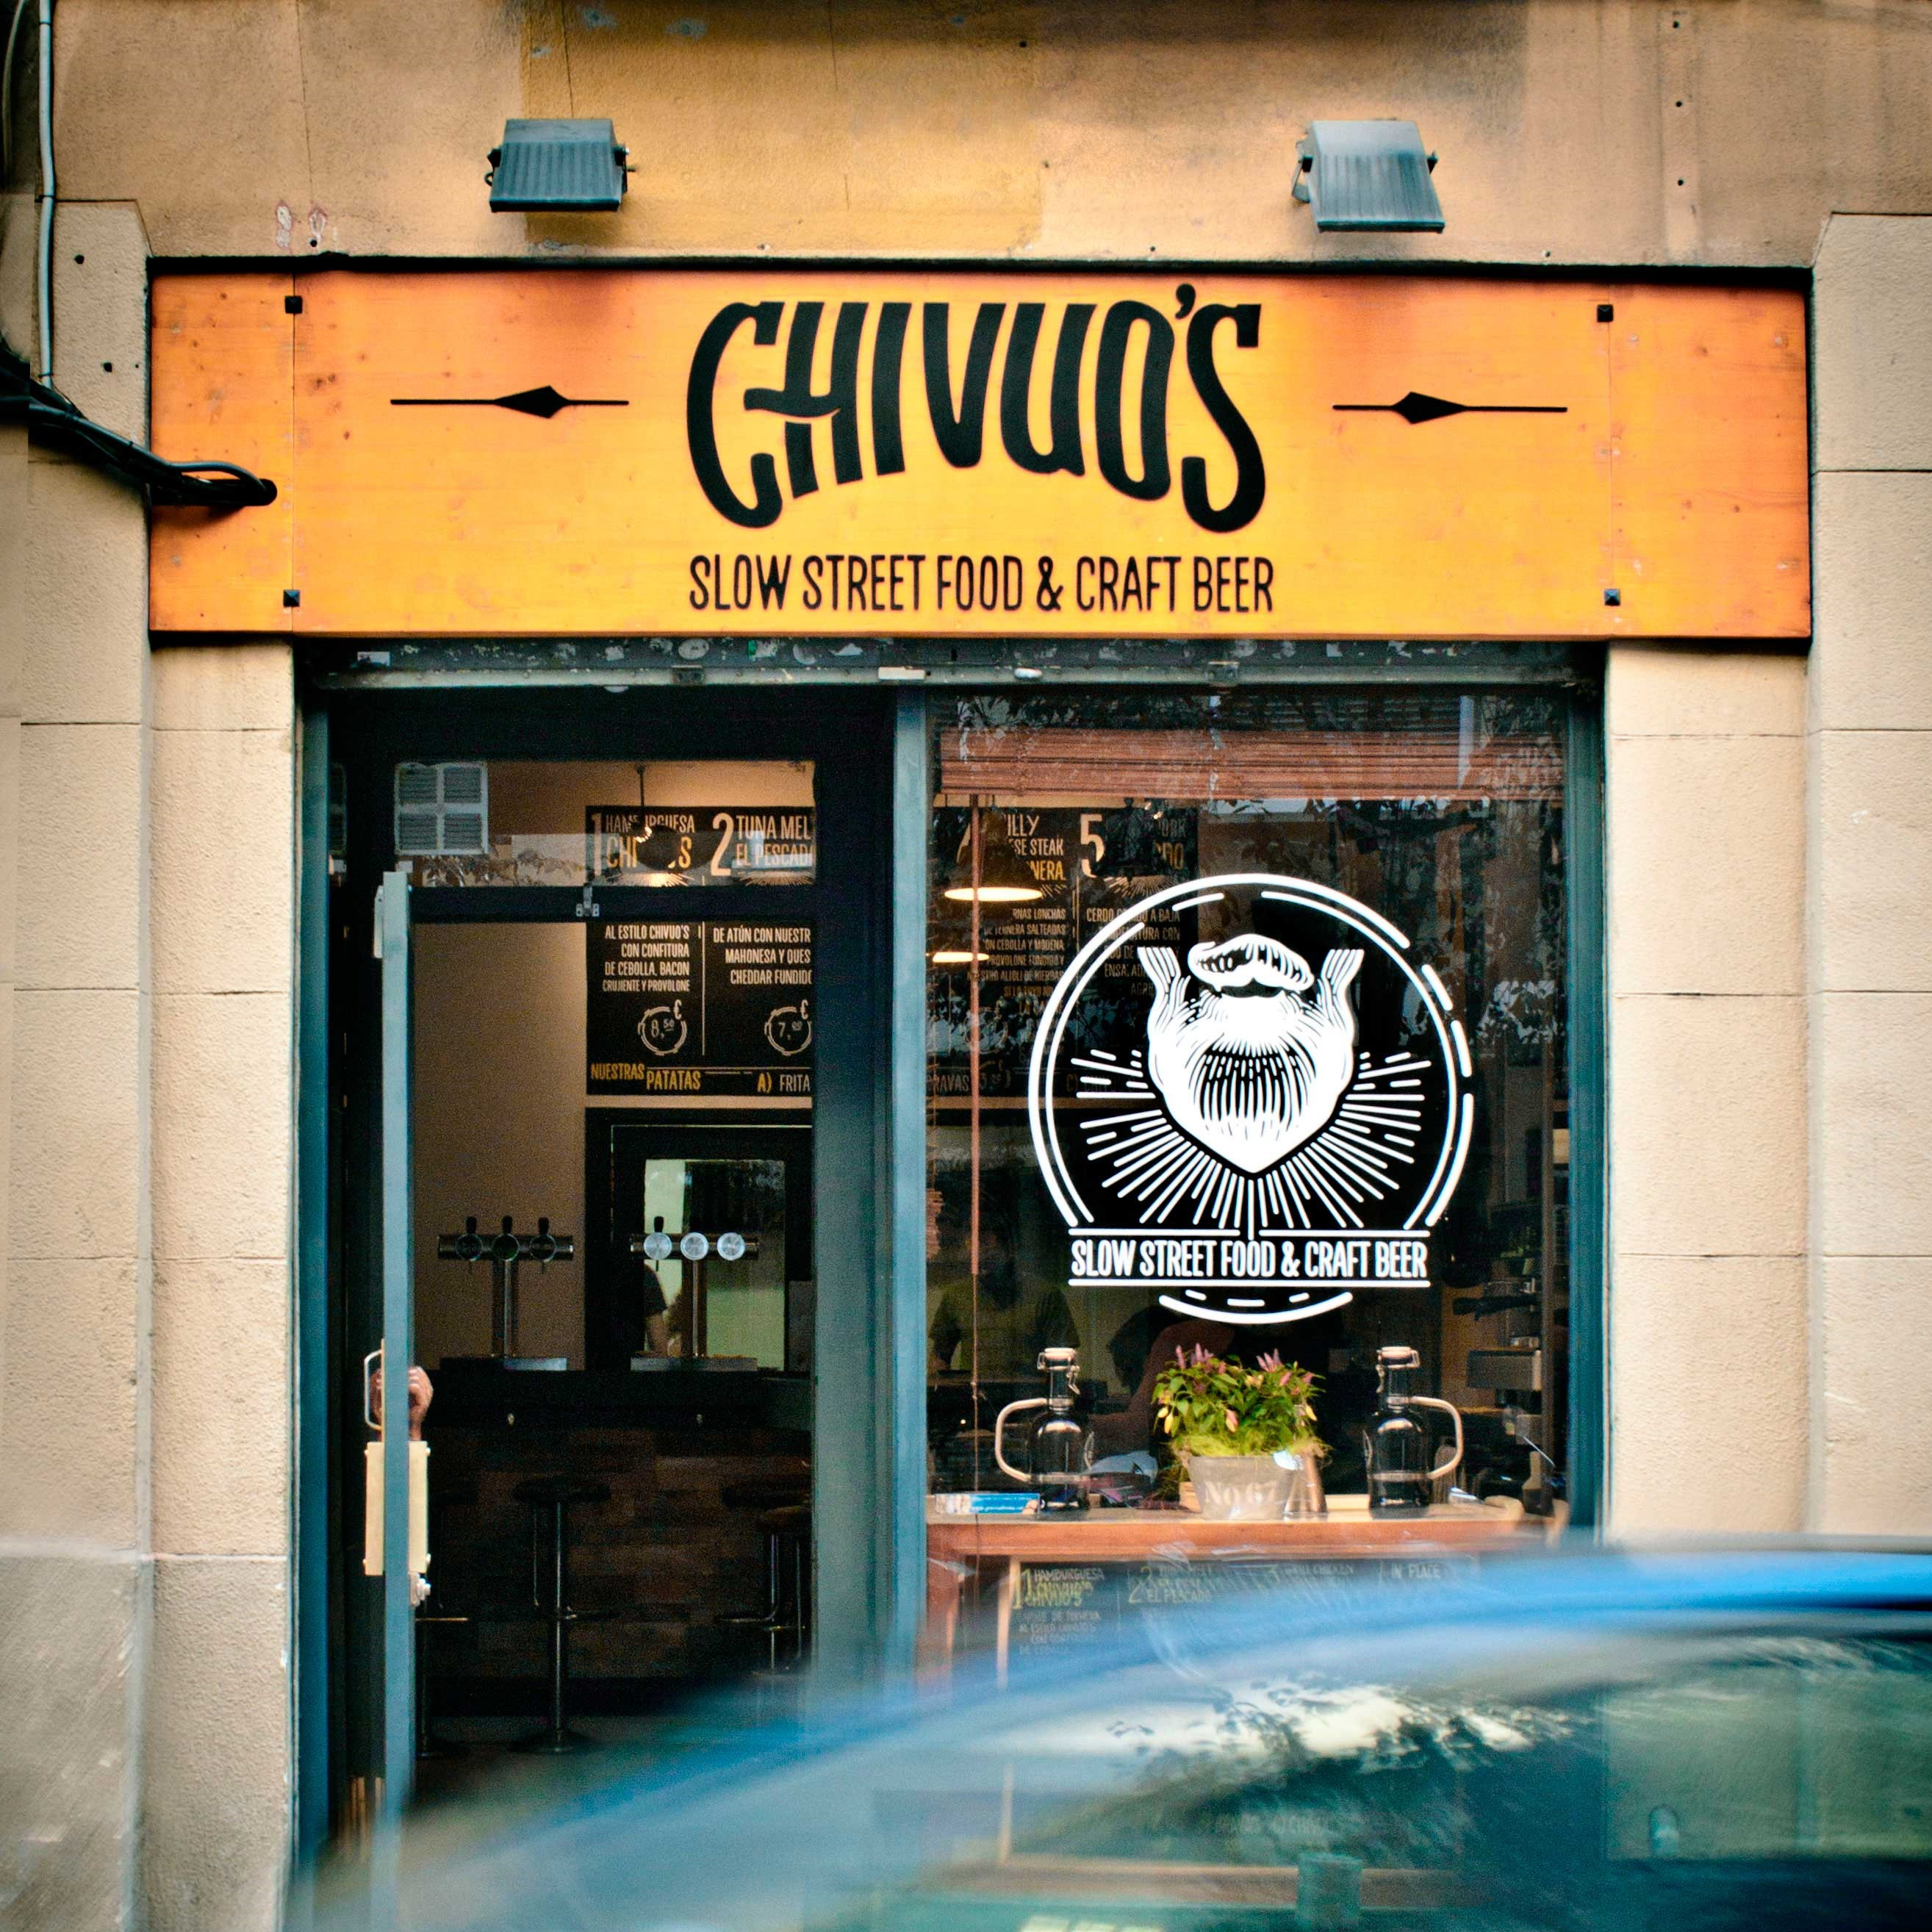 Chivuo's Street Food & Craft Beer